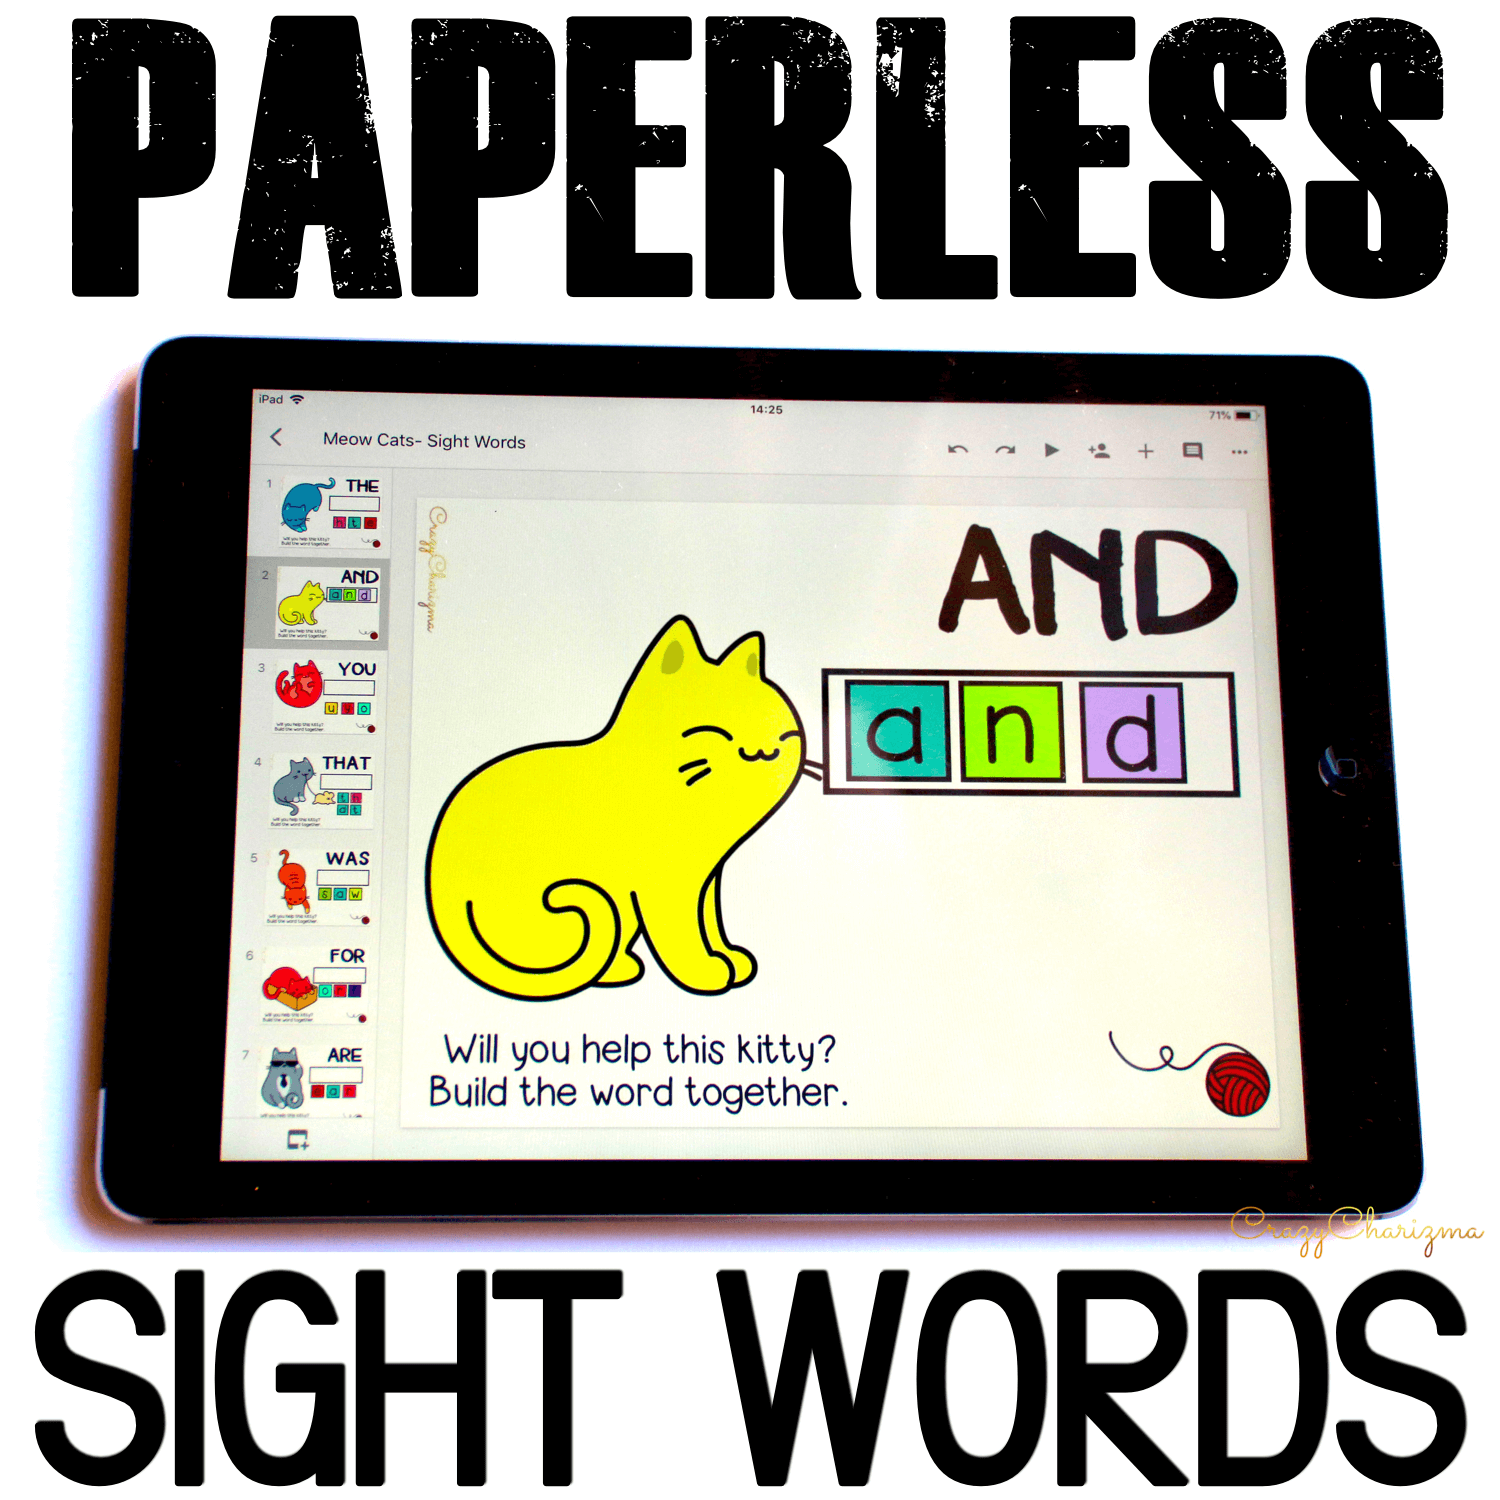 Google Classroom Activities for Kindergarten. Sight Words Games. Using Google Classroom in kindergarten? Then you'll definitely need engaging and fun activities to practice sight words! Check out these quick sight words games. #CrazyCharizma #GoogleClassroom #GoogleClassroomKindergarten #HandsOnActivitiesForKids #PaperlessClassroomElementary #SightWordActivities